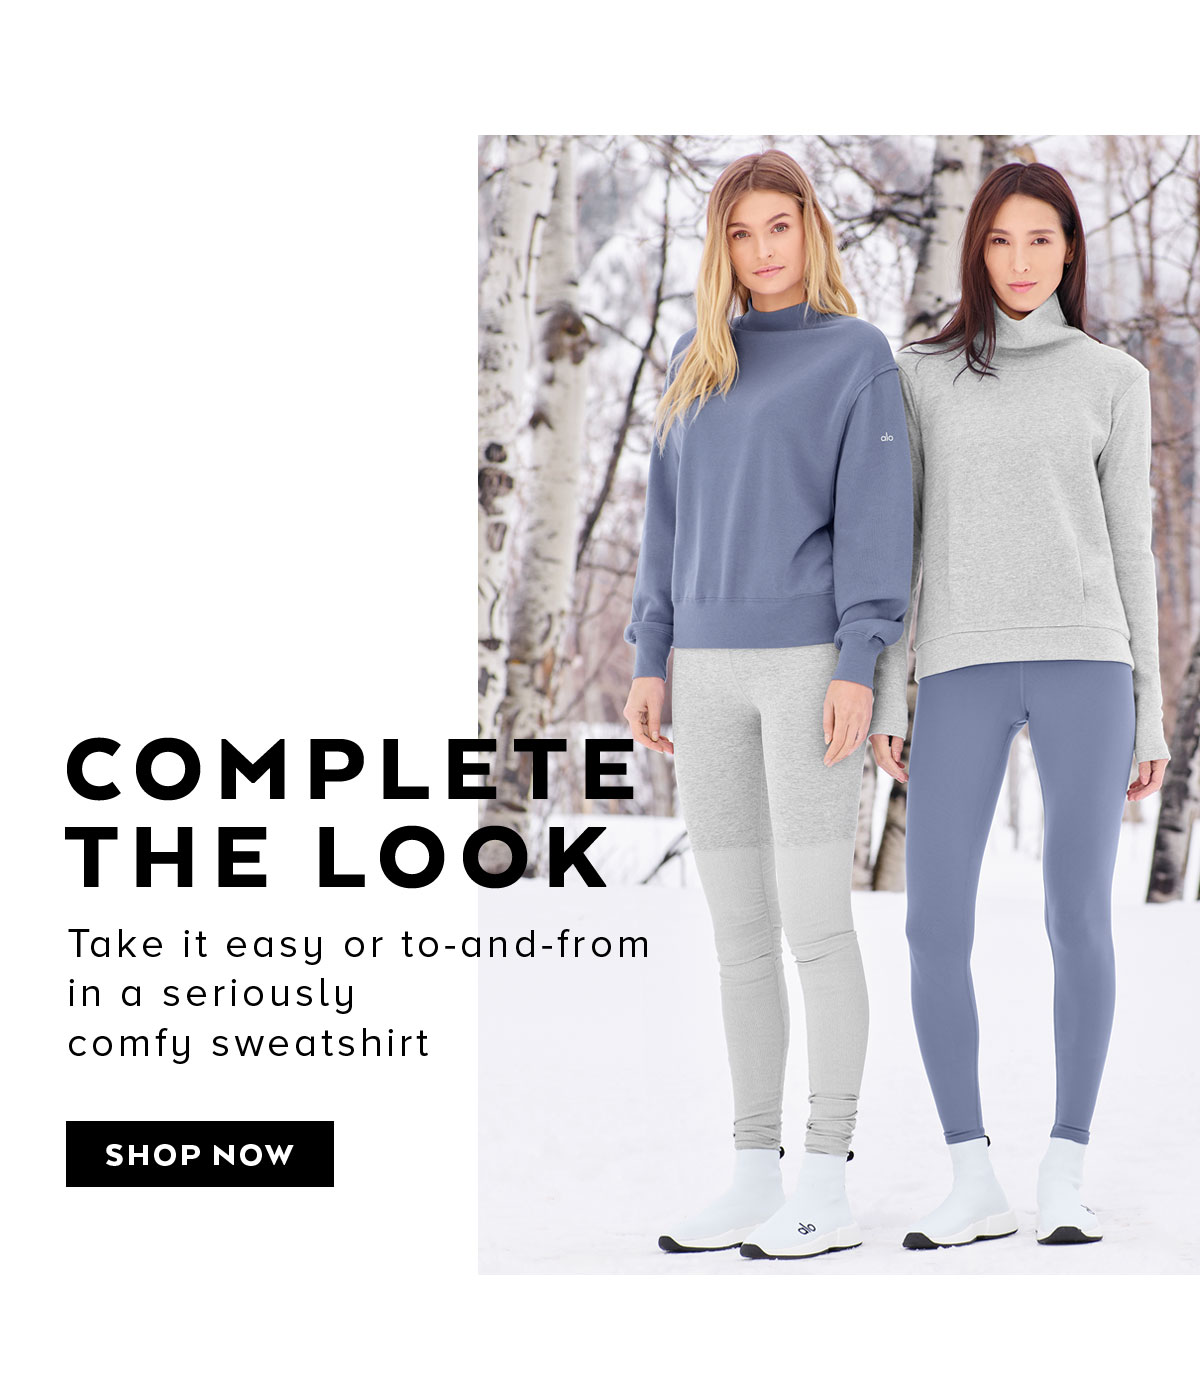 COMPLETE THE LOOK. Take it easy or to-and-from in a seriously comfy sweatshirt. SHOP NOW